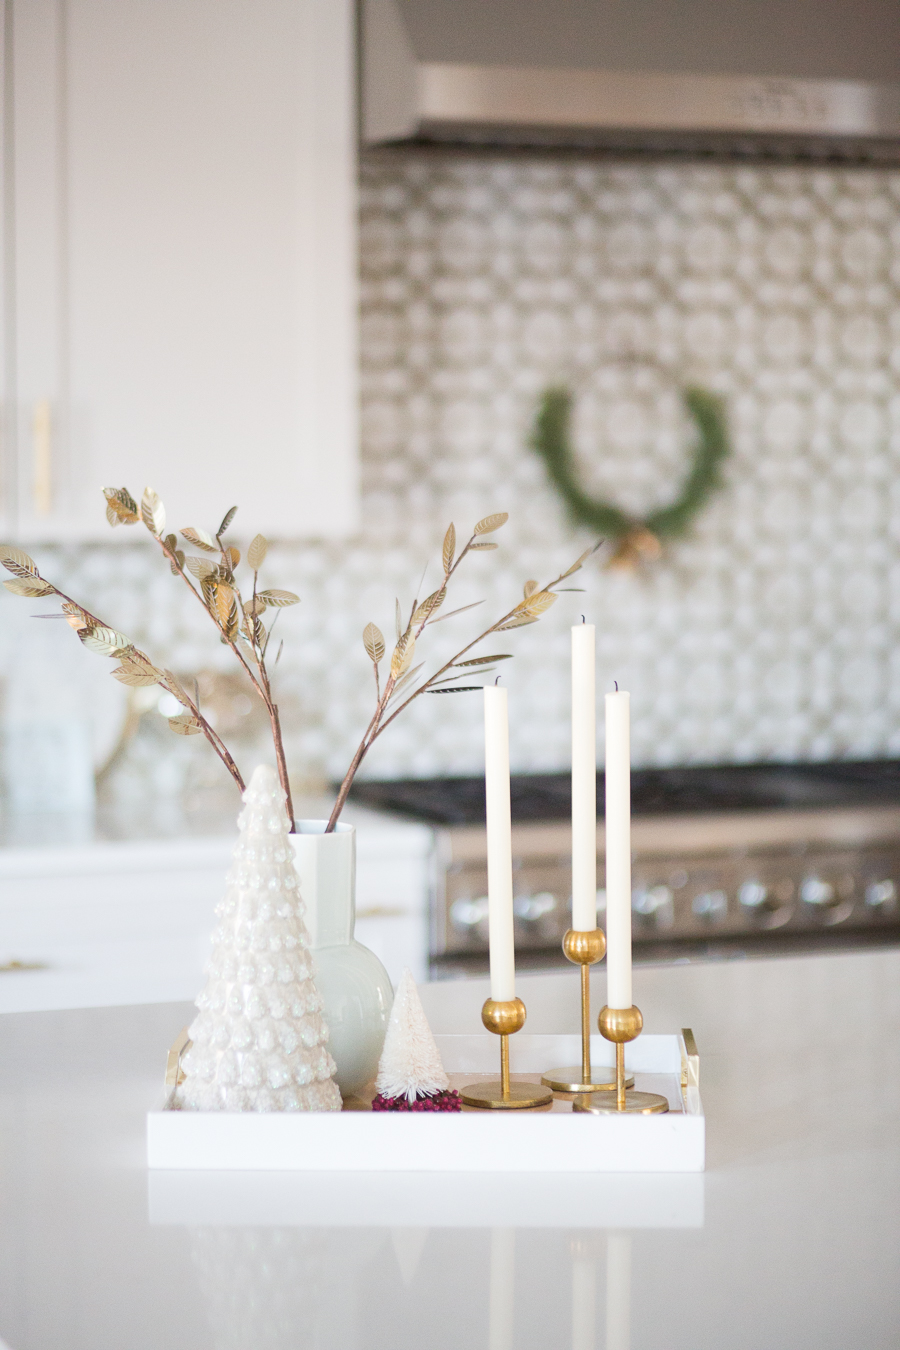 21 Easy Christmas Decor and Gift Ideas from West Elm